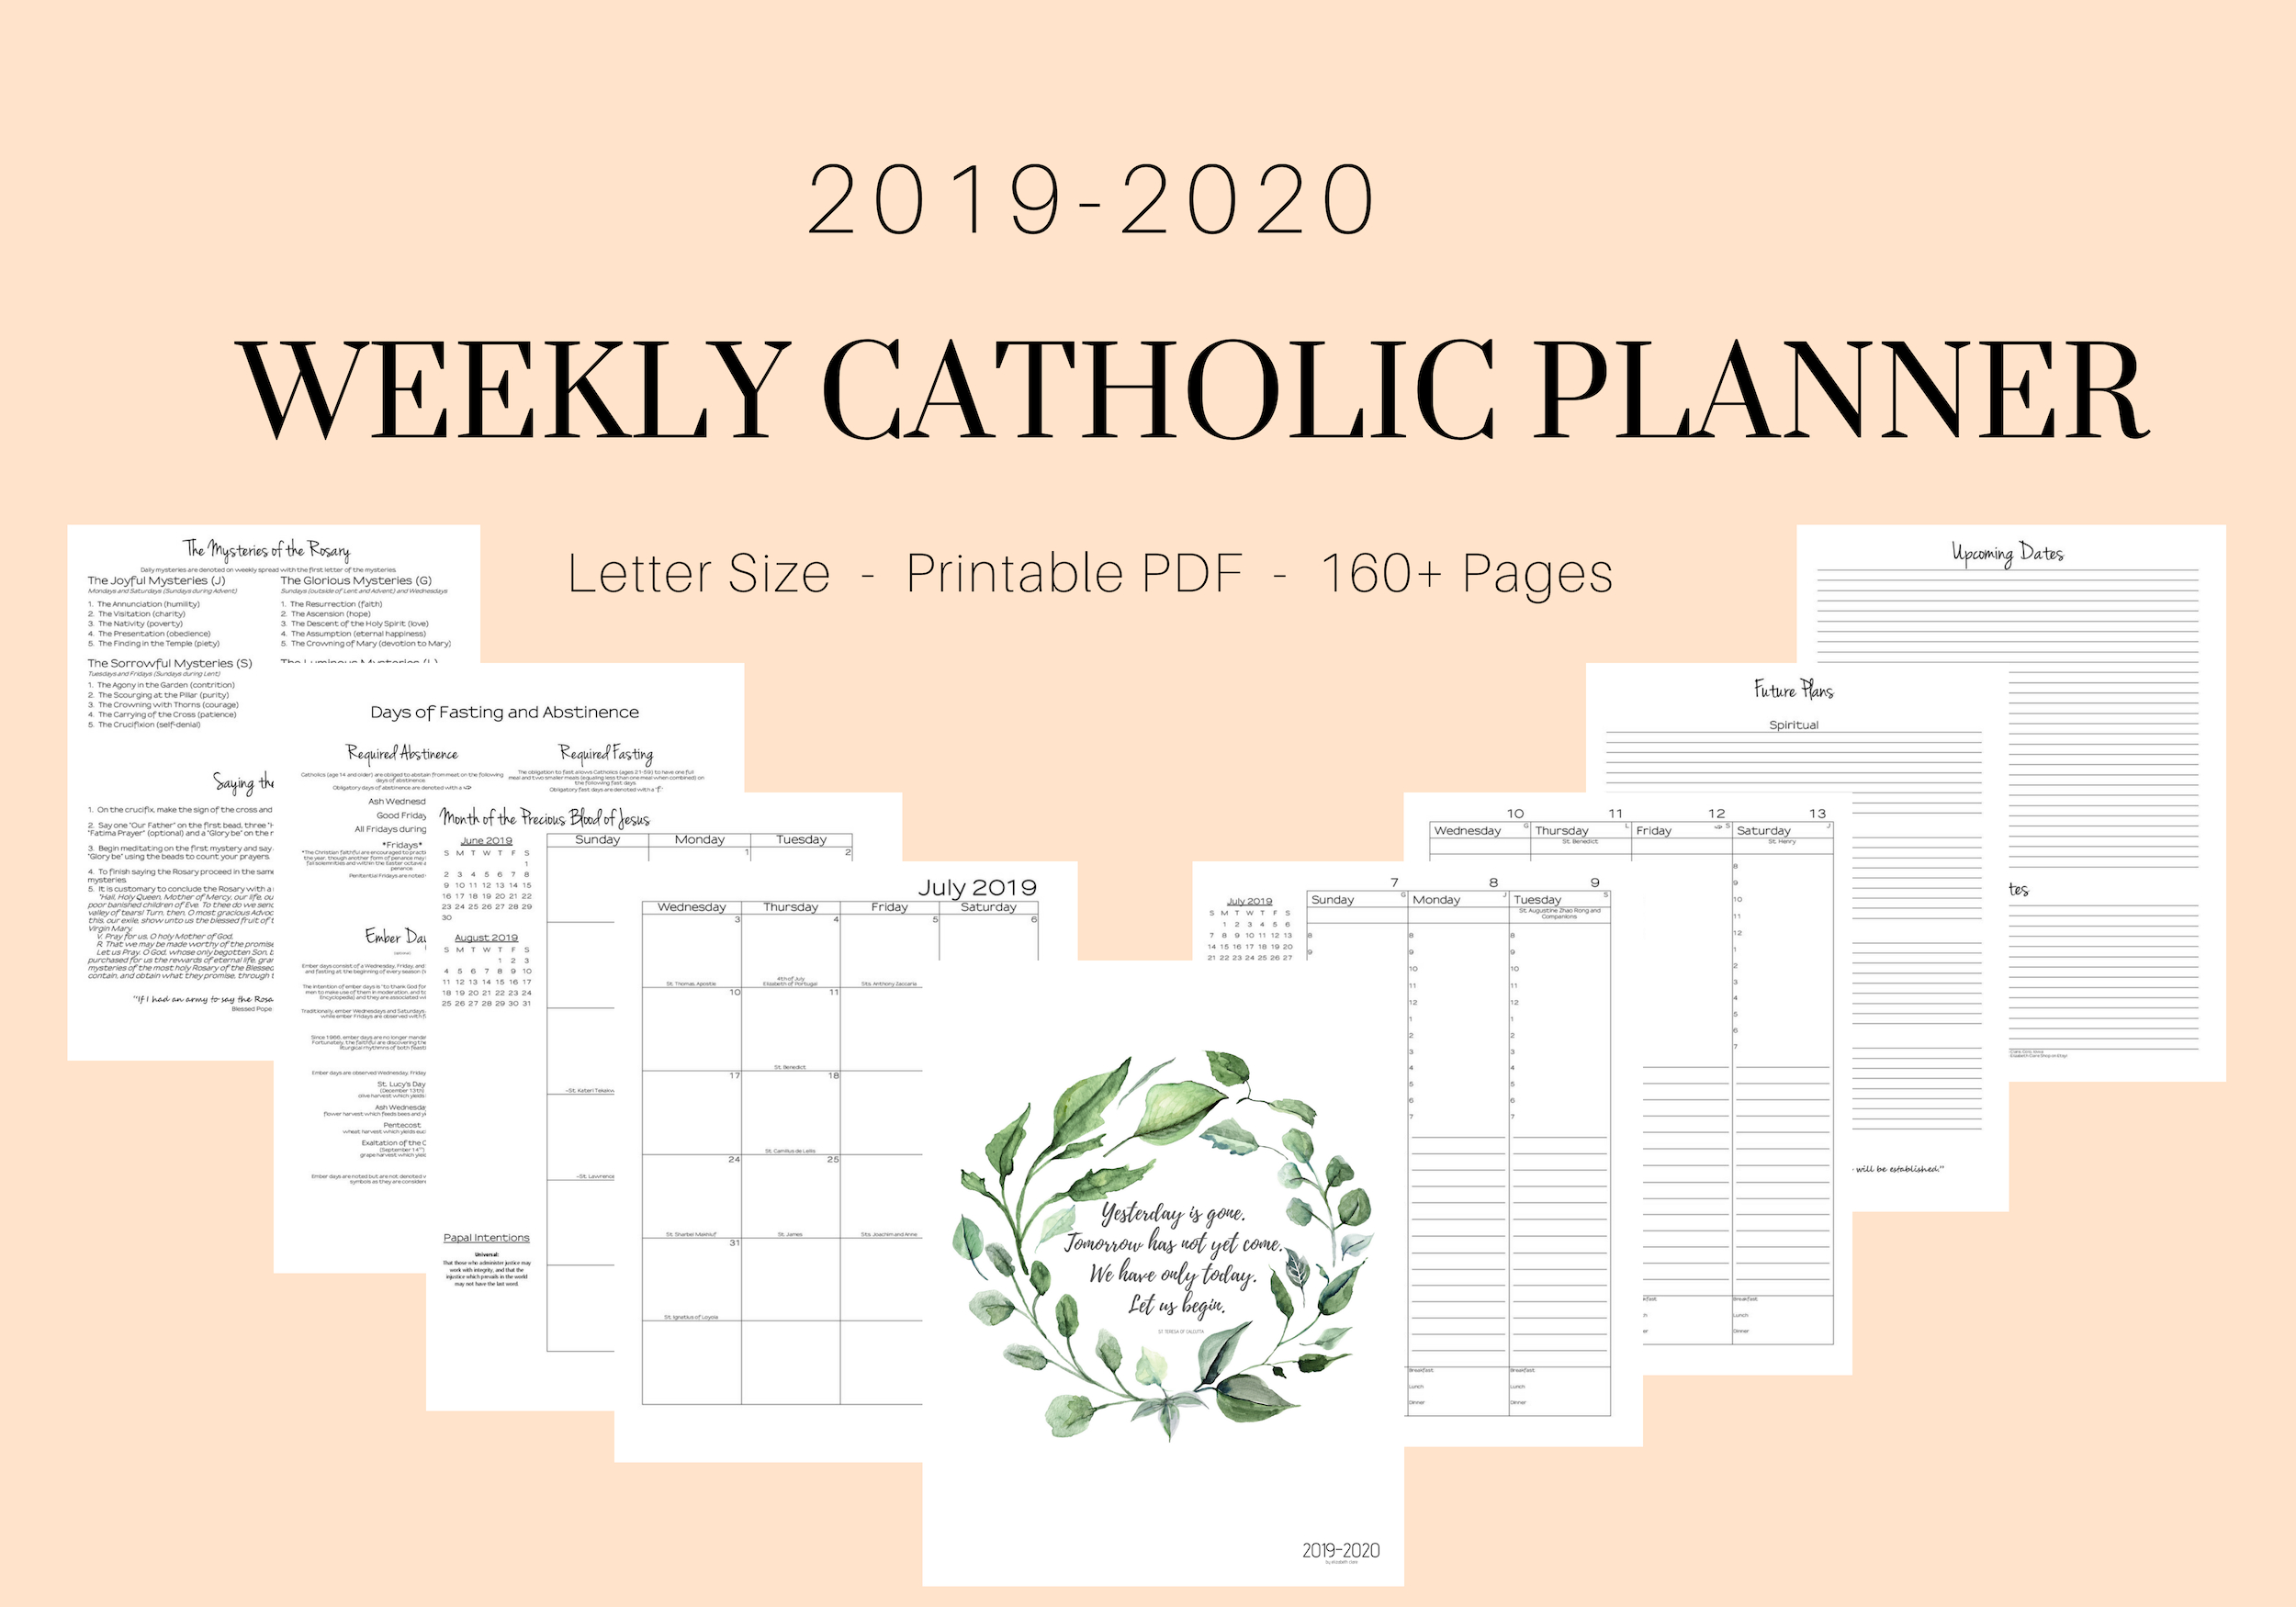 2019-2020 Catholic Weekly Planner